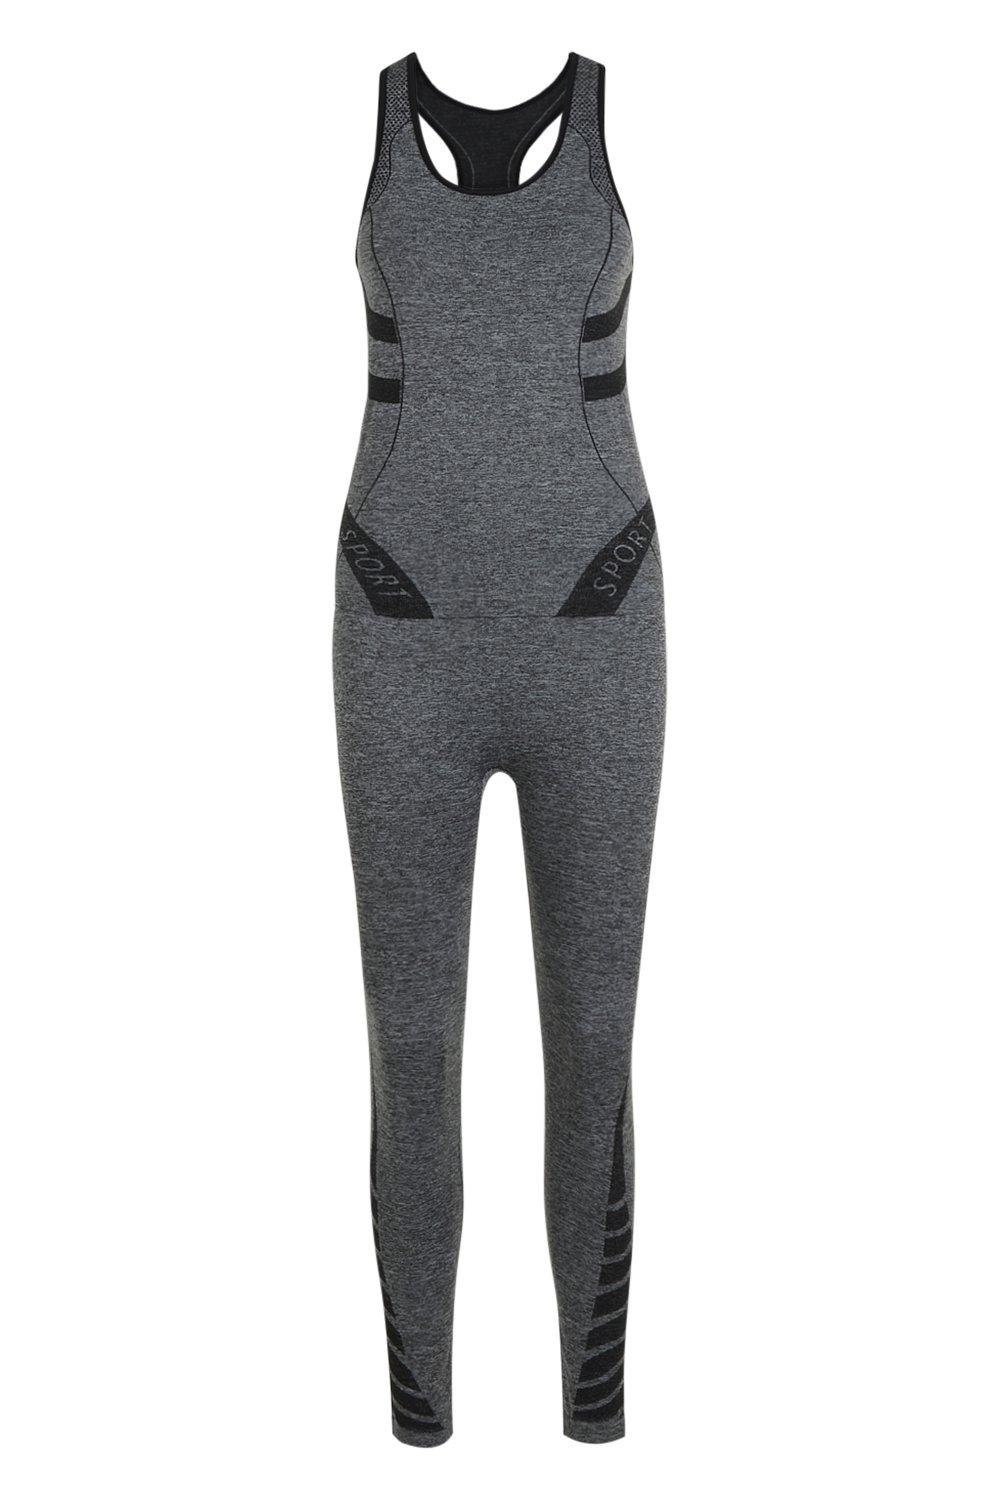 black Legging Fit Sports Set And Vest XqvO7